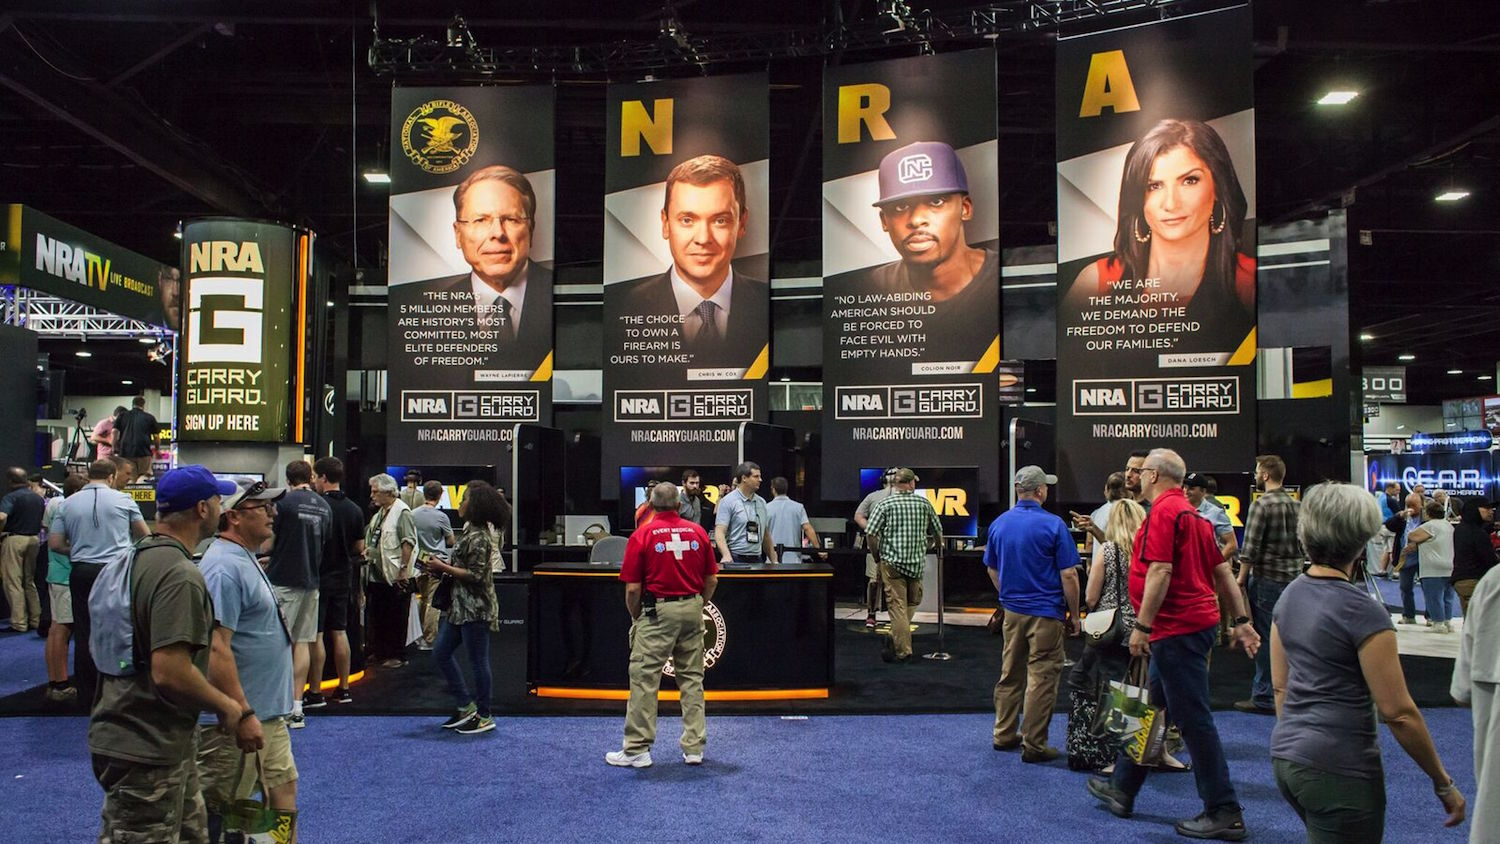 NRA Annual Meetings And Exhibits Honored Among BizBash Top 100 Events In U.S.